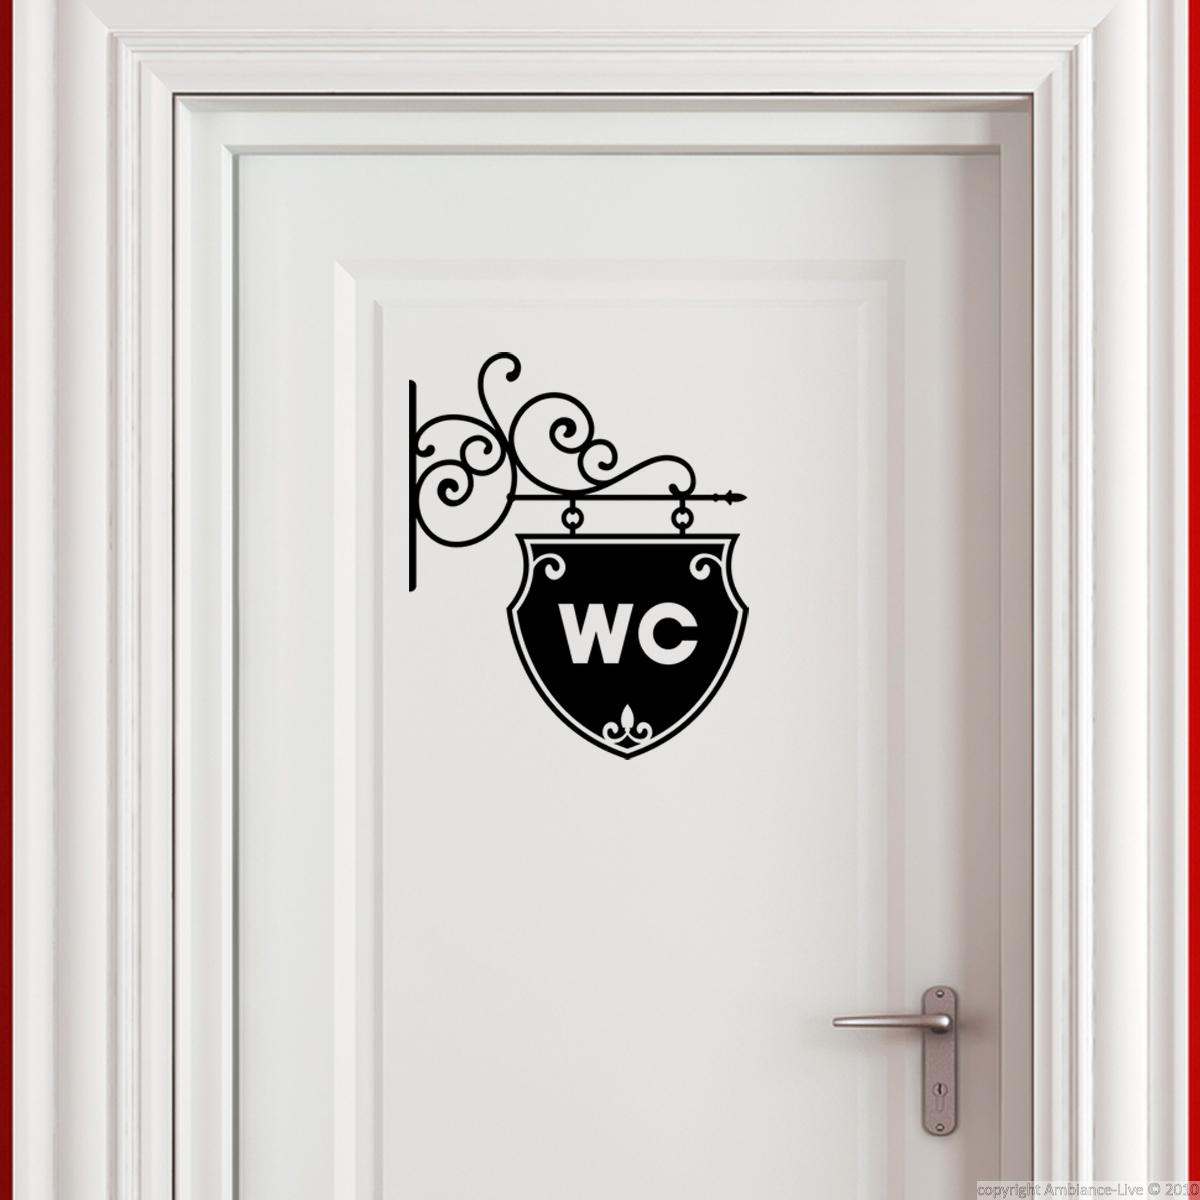 Porte wc dessin stickers plaque de porte wc ref 1 bis - Plaque de porte wc design ...